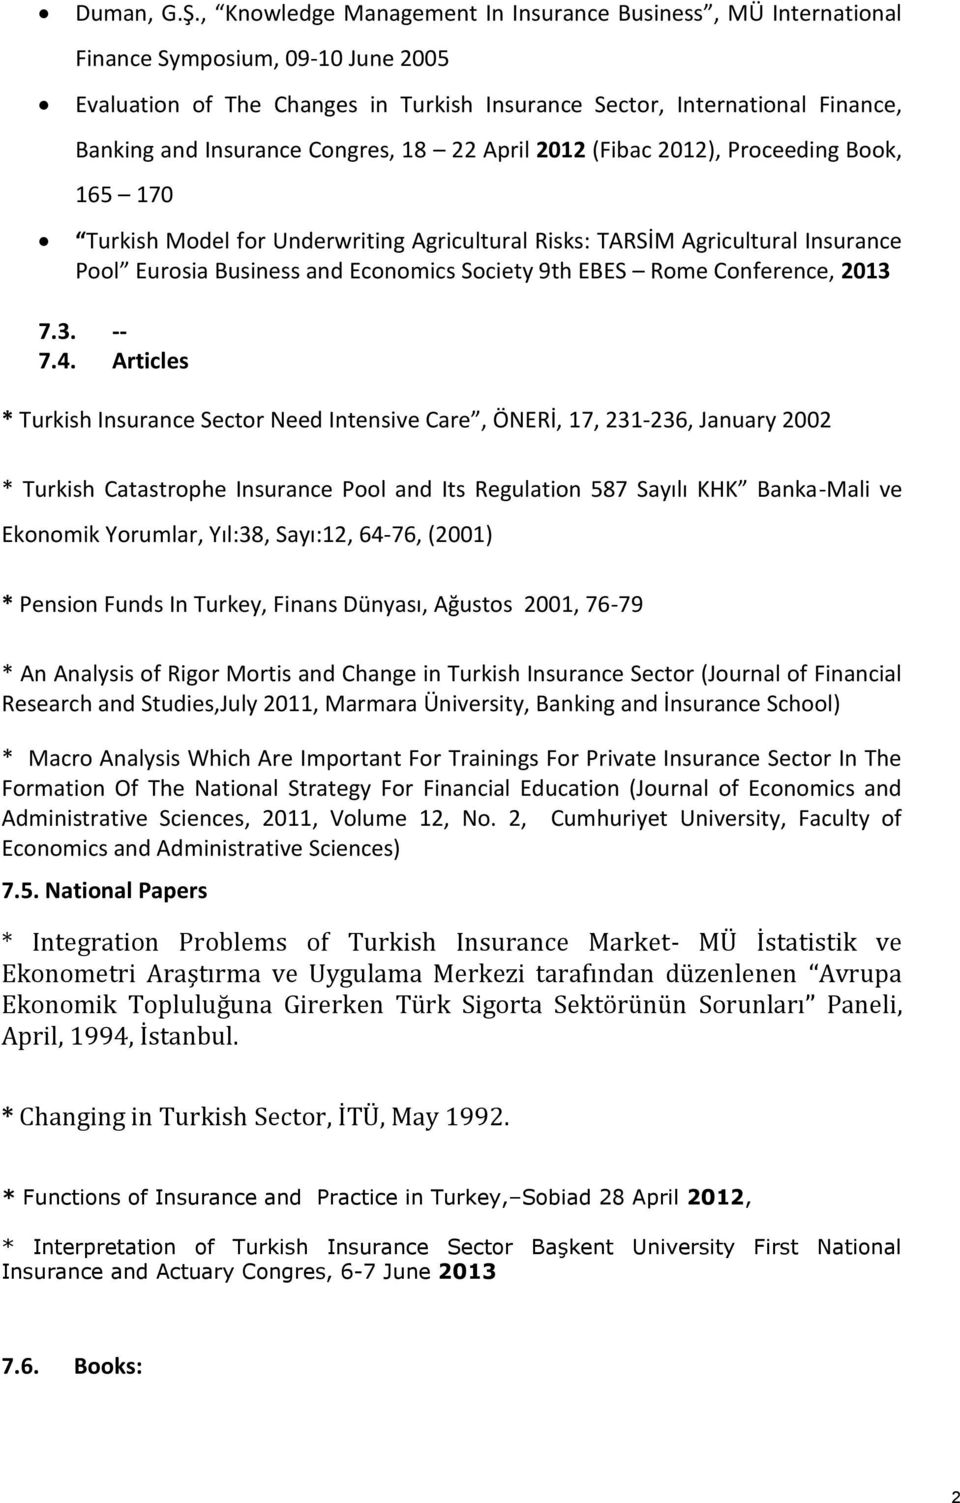 Congres, 18 April 1 (Fibac 1), Proceeding Book, 165 17 Turkish Model for Underwriting Agricultural Risks: TARSİM Agricultural Insurance Pool Eurosia Business and Economics Society 9th EBES Rome